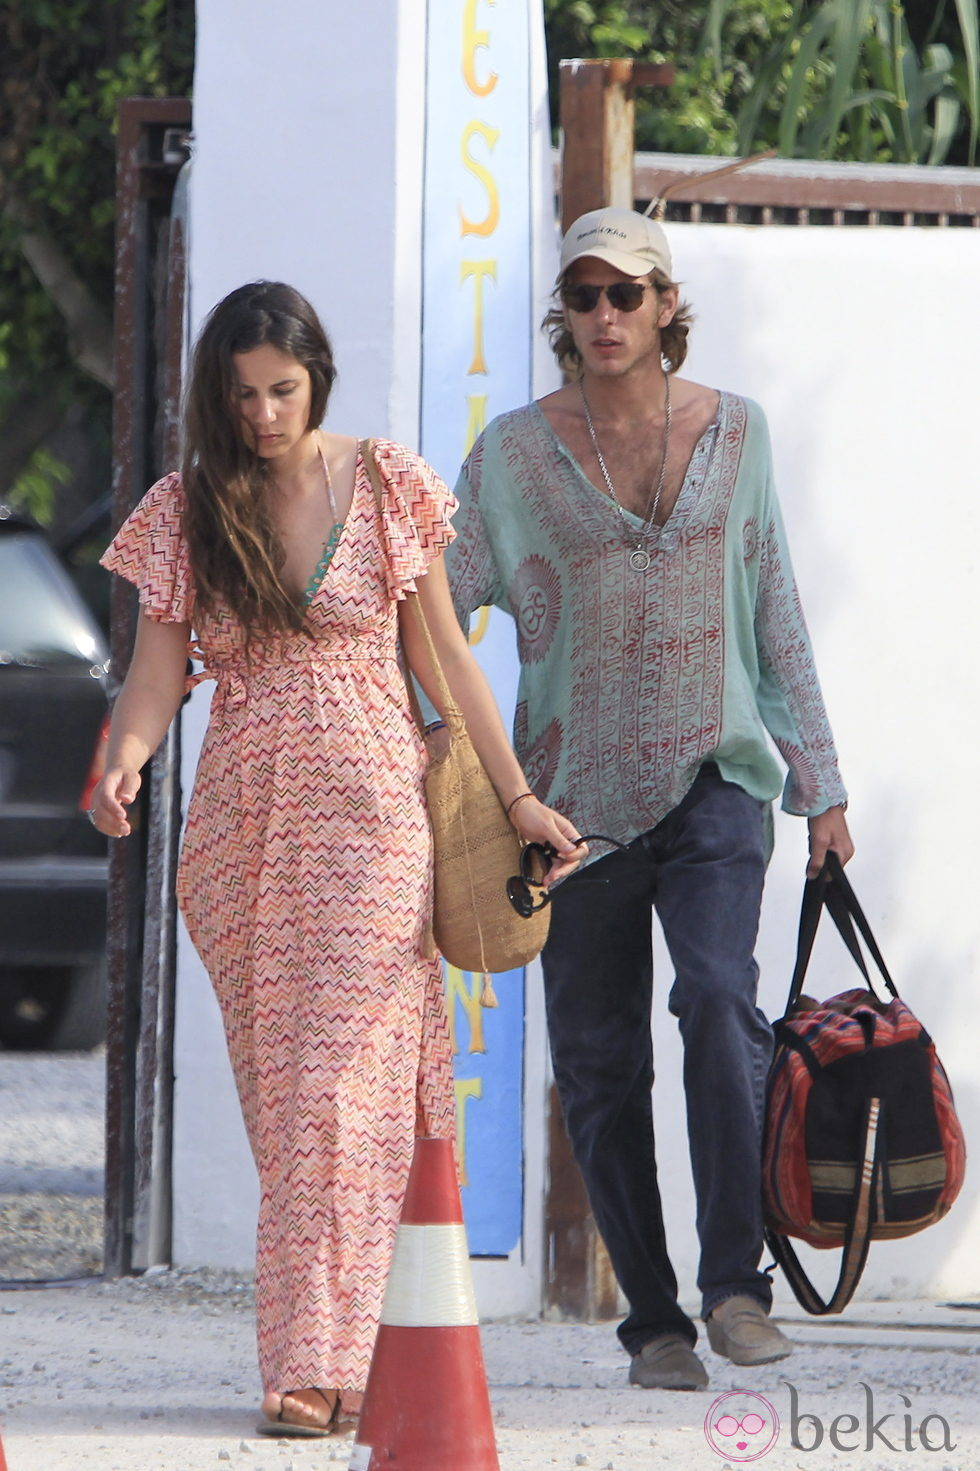 Your place Andrea casiraghi tatiana santo domingo seems brilliant